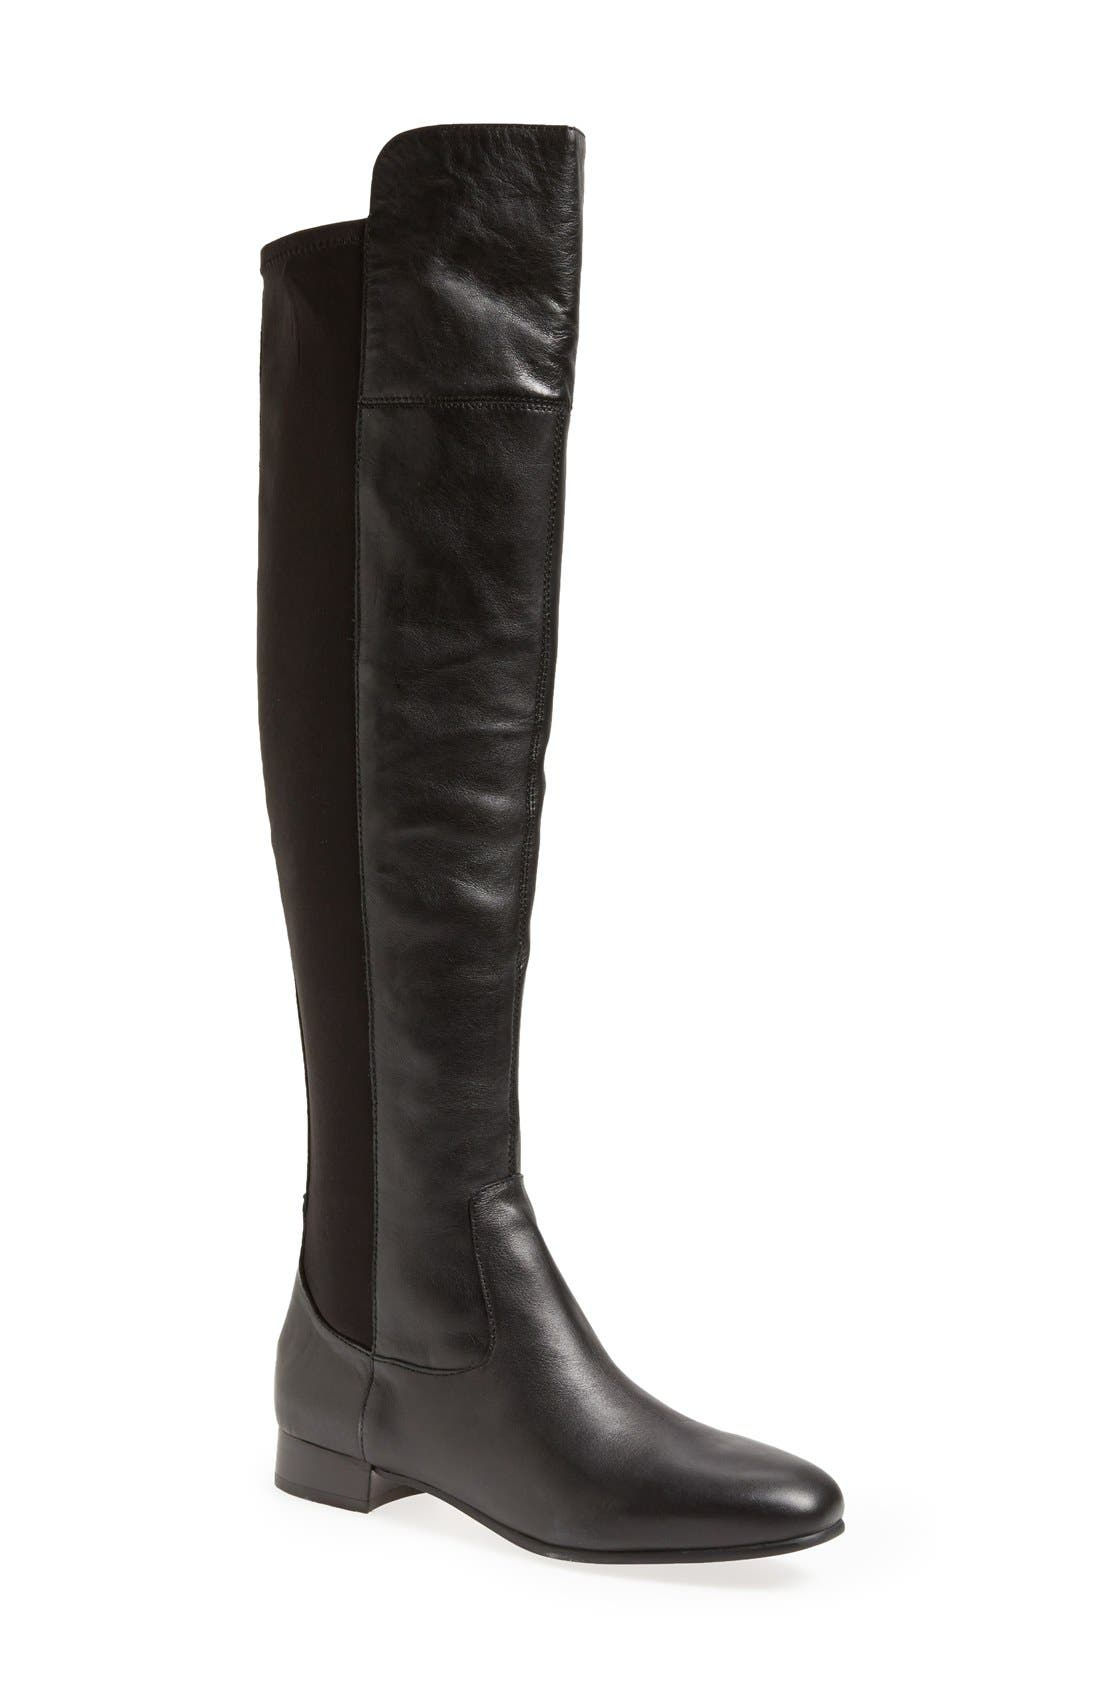 LOUISE ET CIE,                             'Andora' Over the Knee Boot,                             Main thumbnail 1, color,                             002